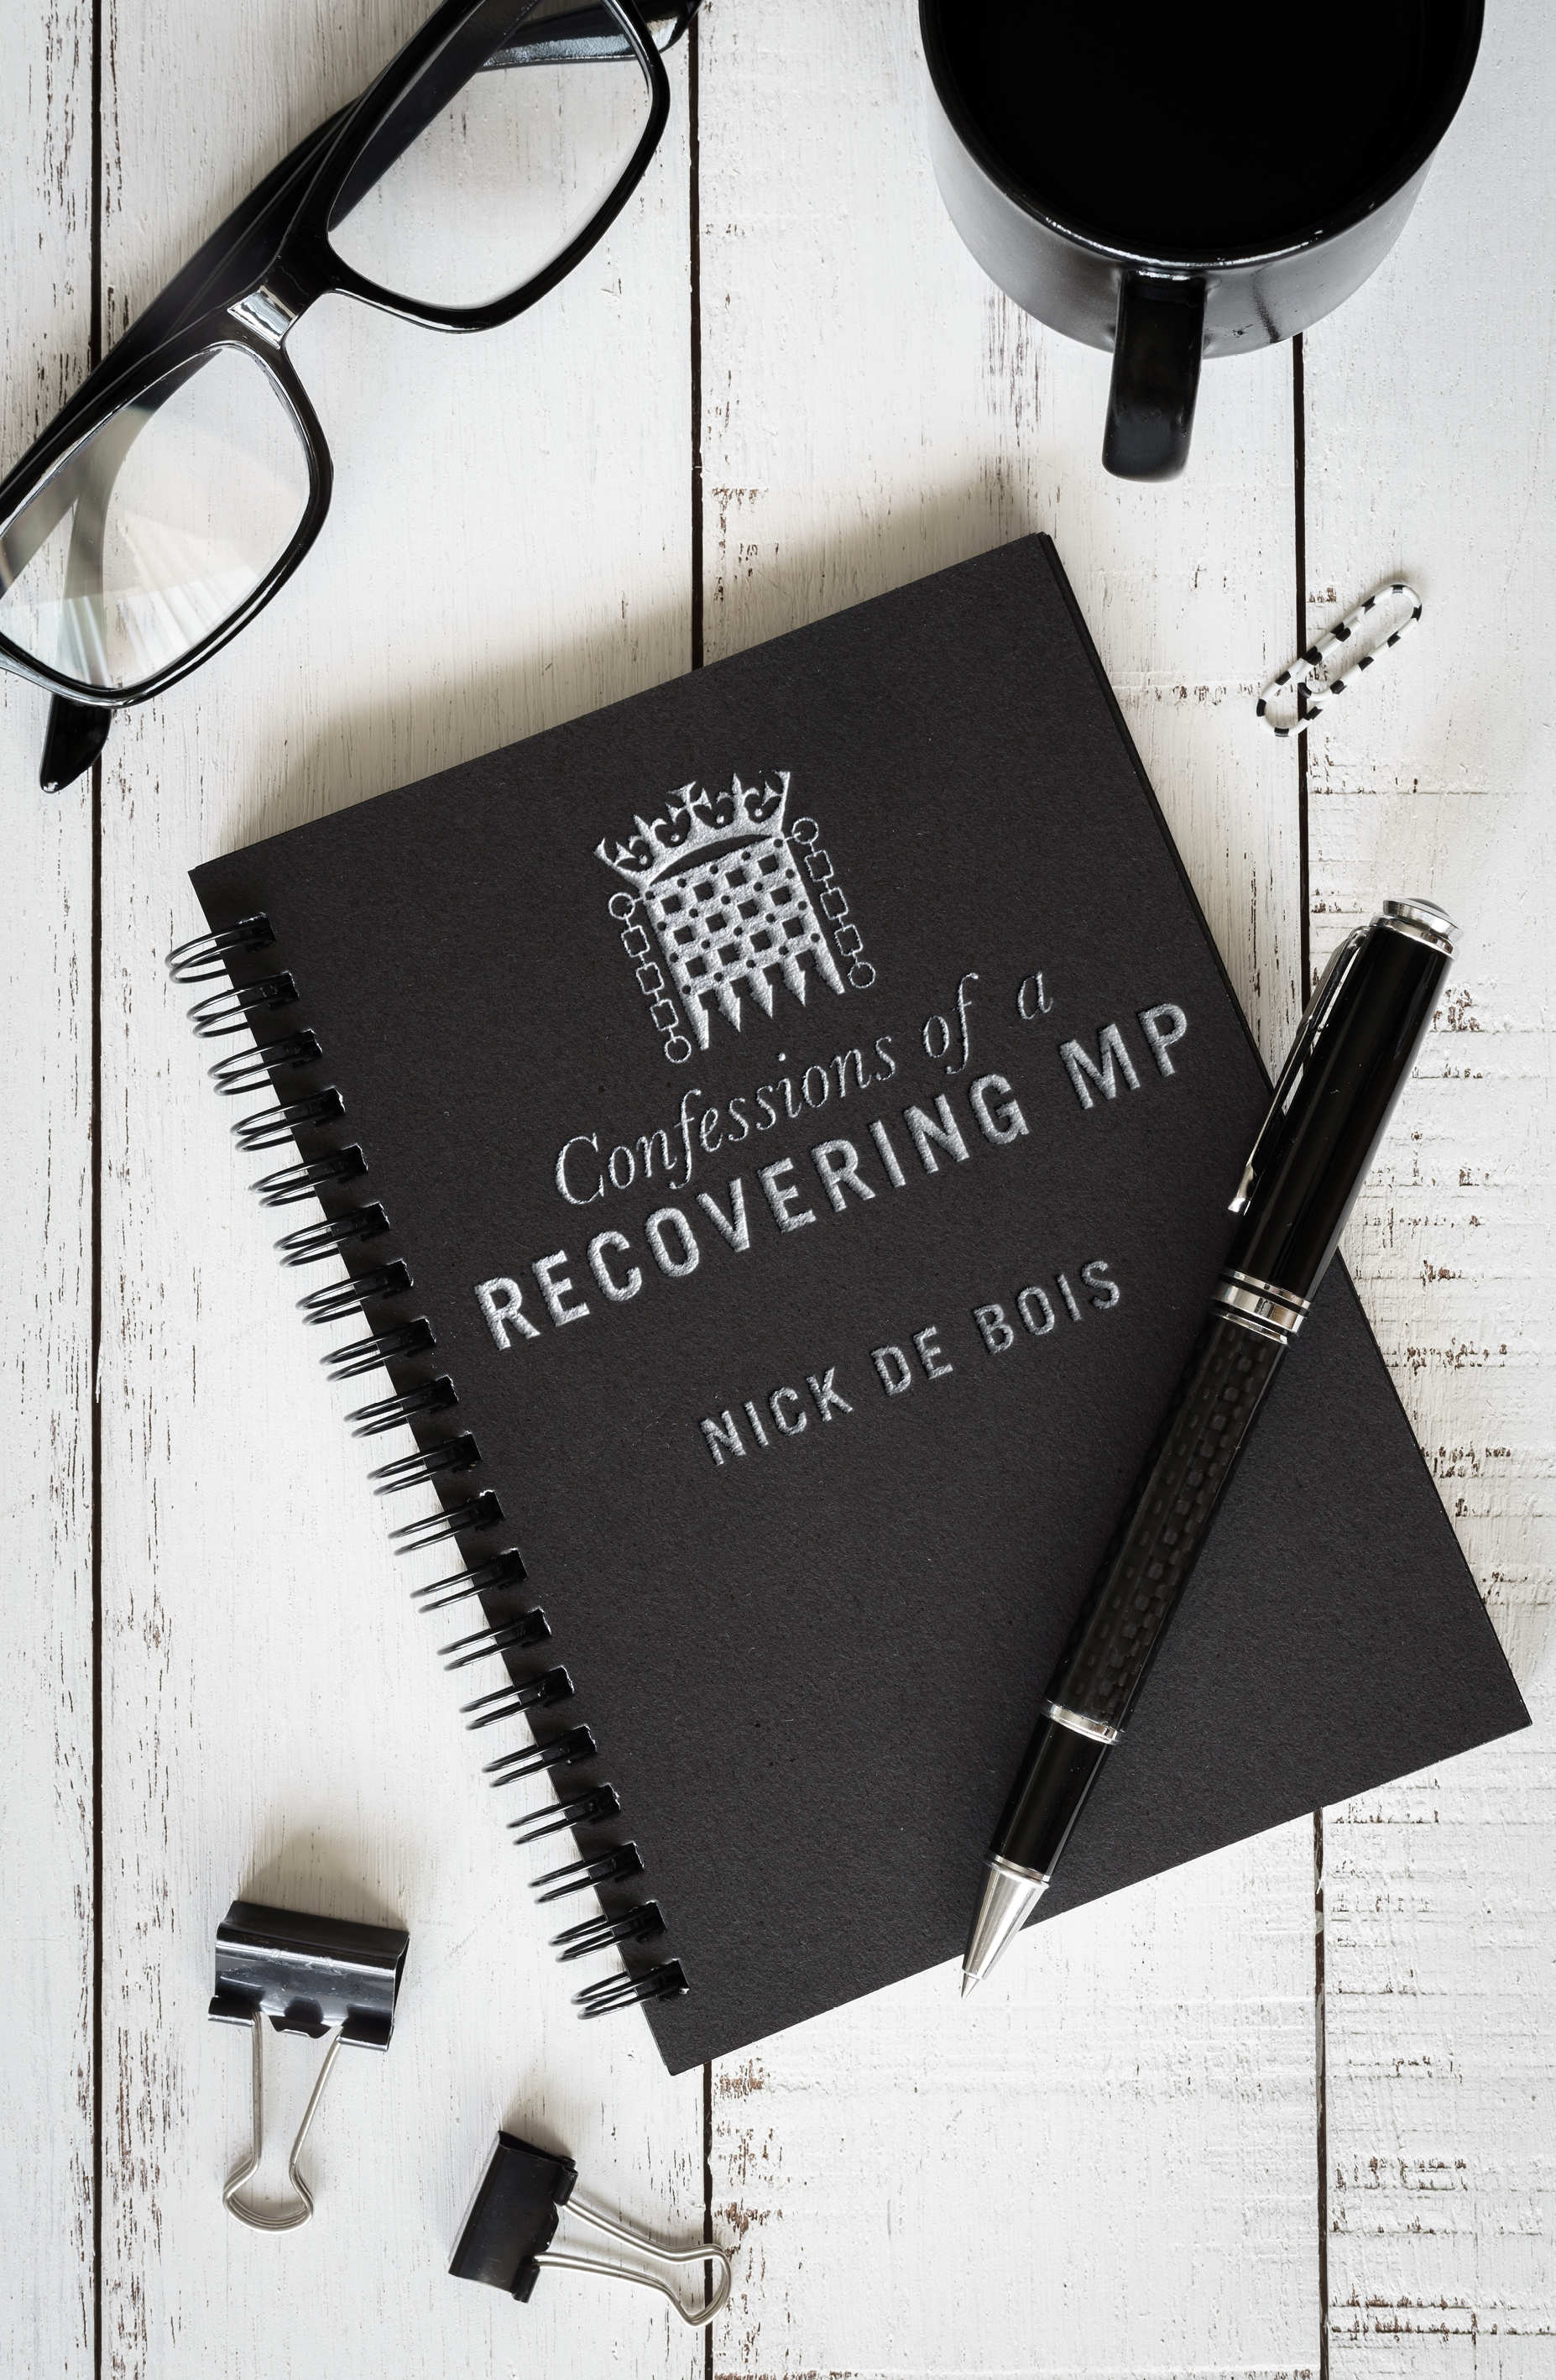 BOOK SIGNING: NICK DE BOIS, author of 'Confessions of a Recovering MP' at Waterstones Enfield